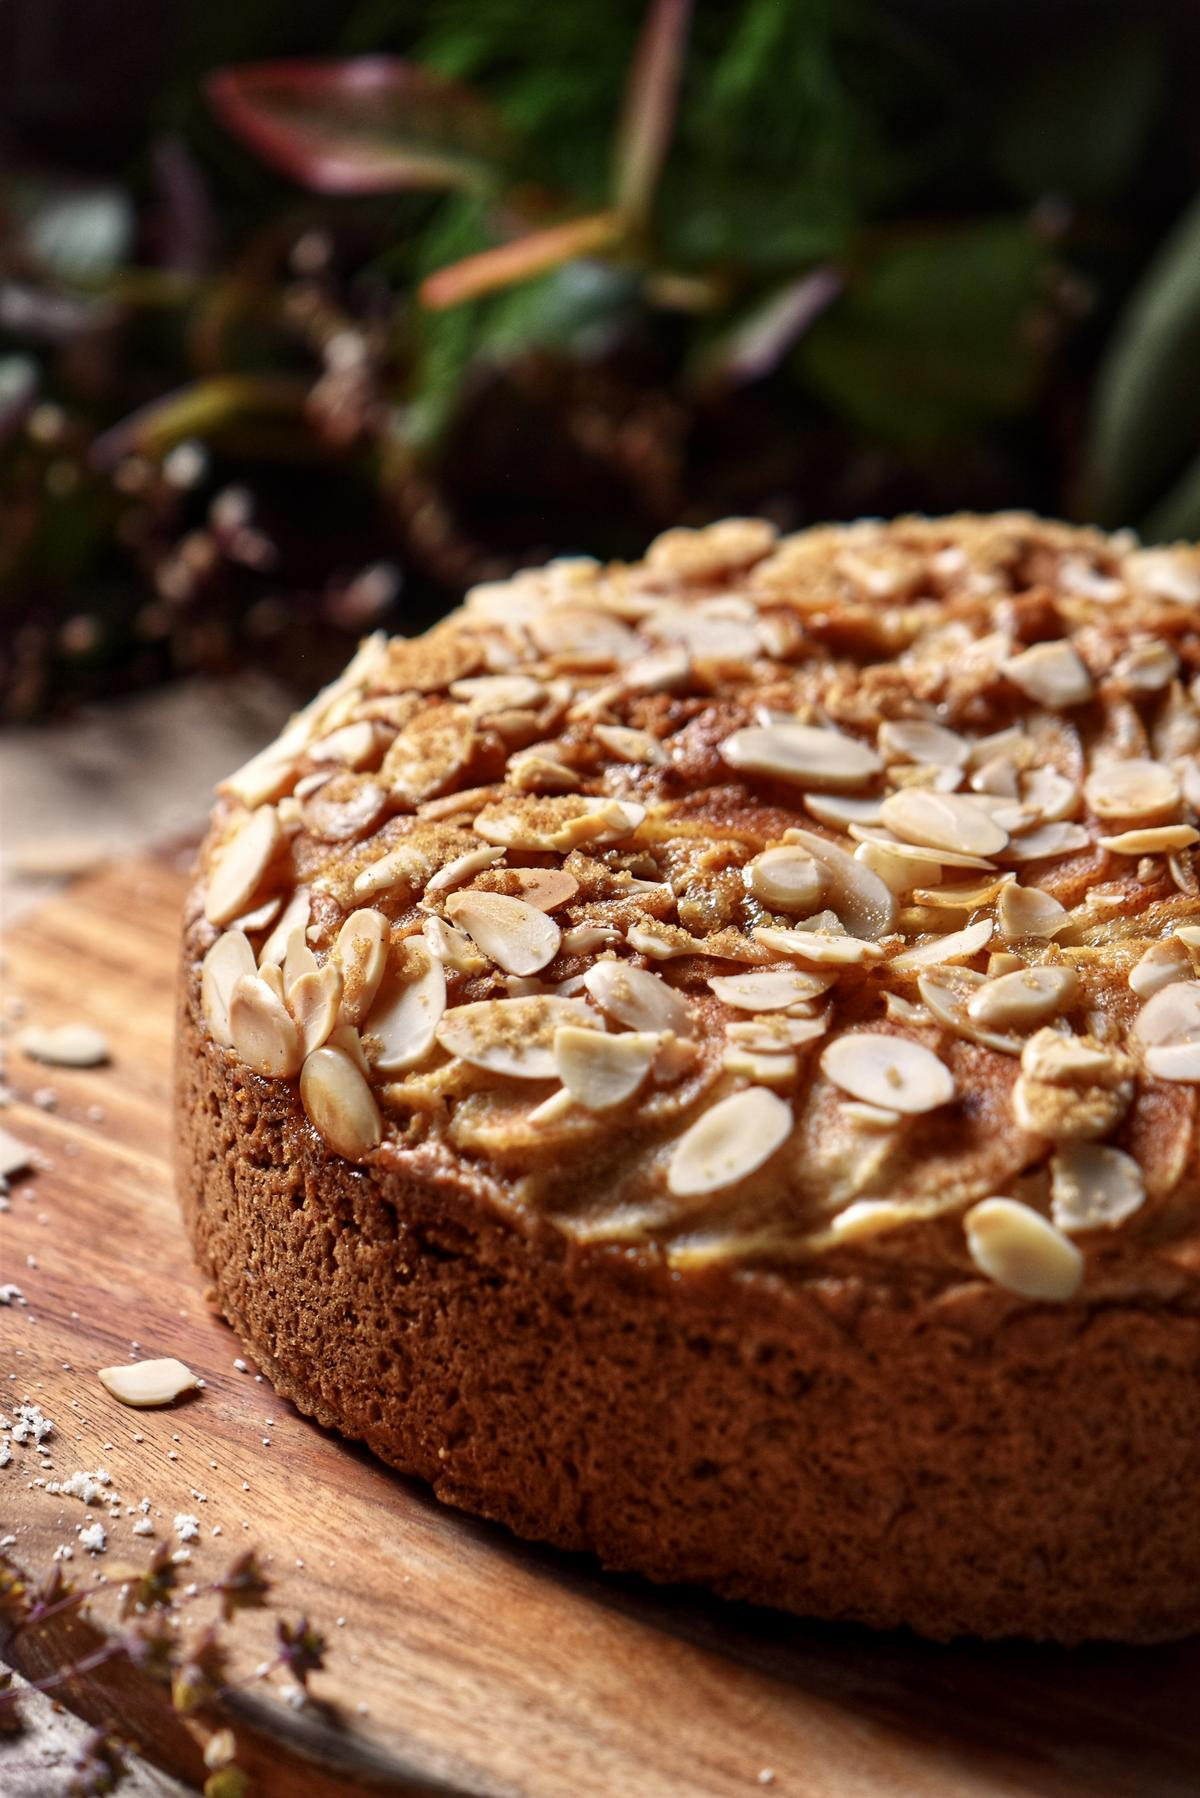 A pear cake garnished with sliced almonds on a wooden board.